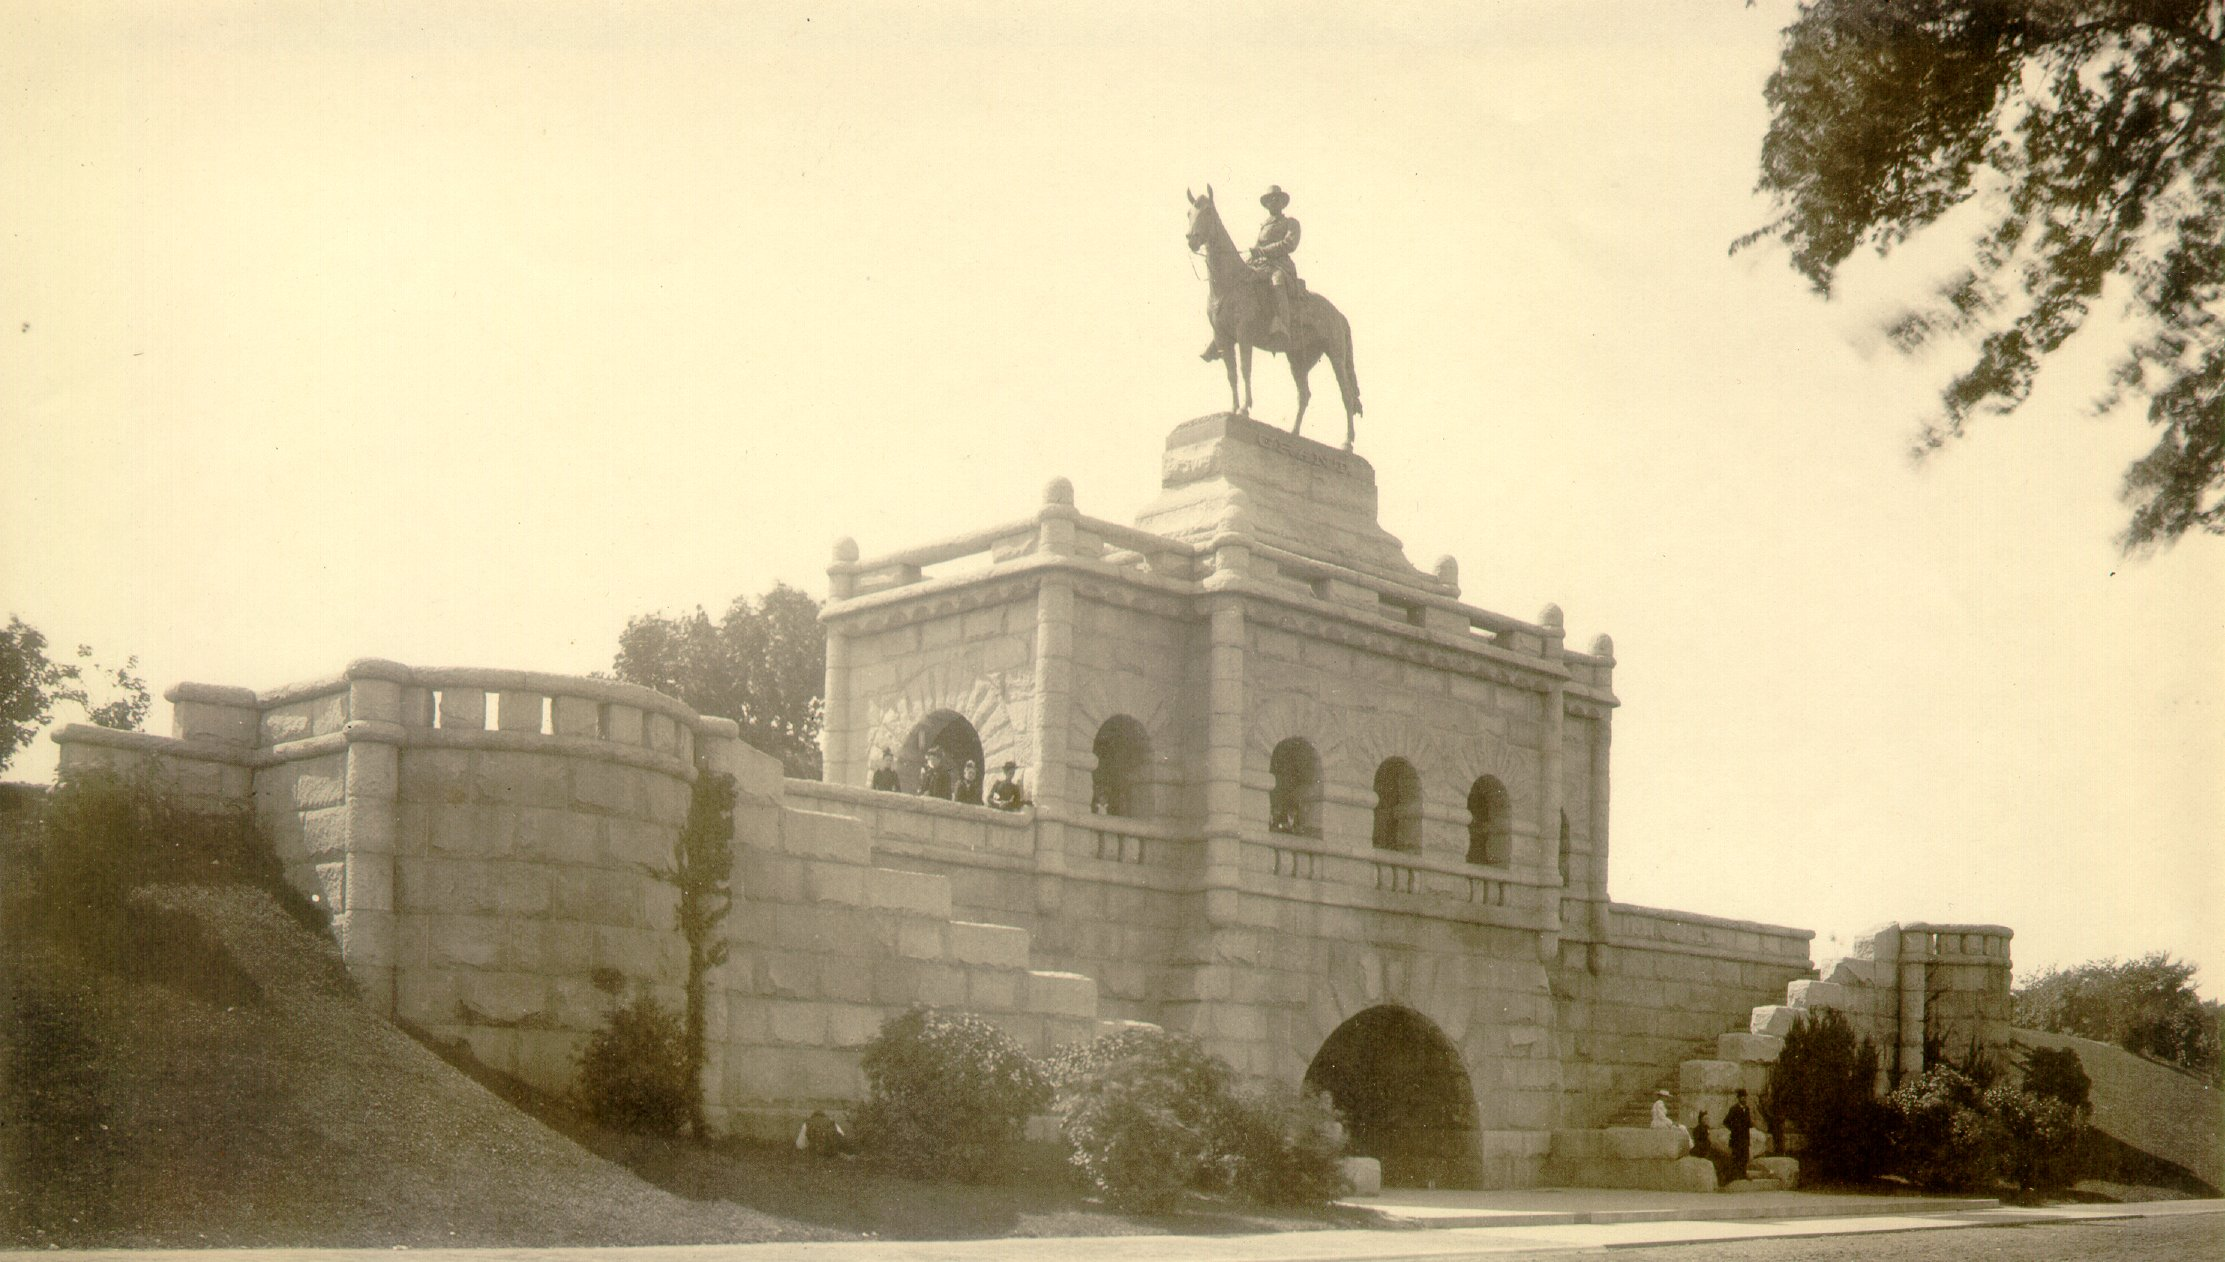 Large Stone Monument With Horse And Rider Statue At Top Monument Of Ulysses S Grant Variant